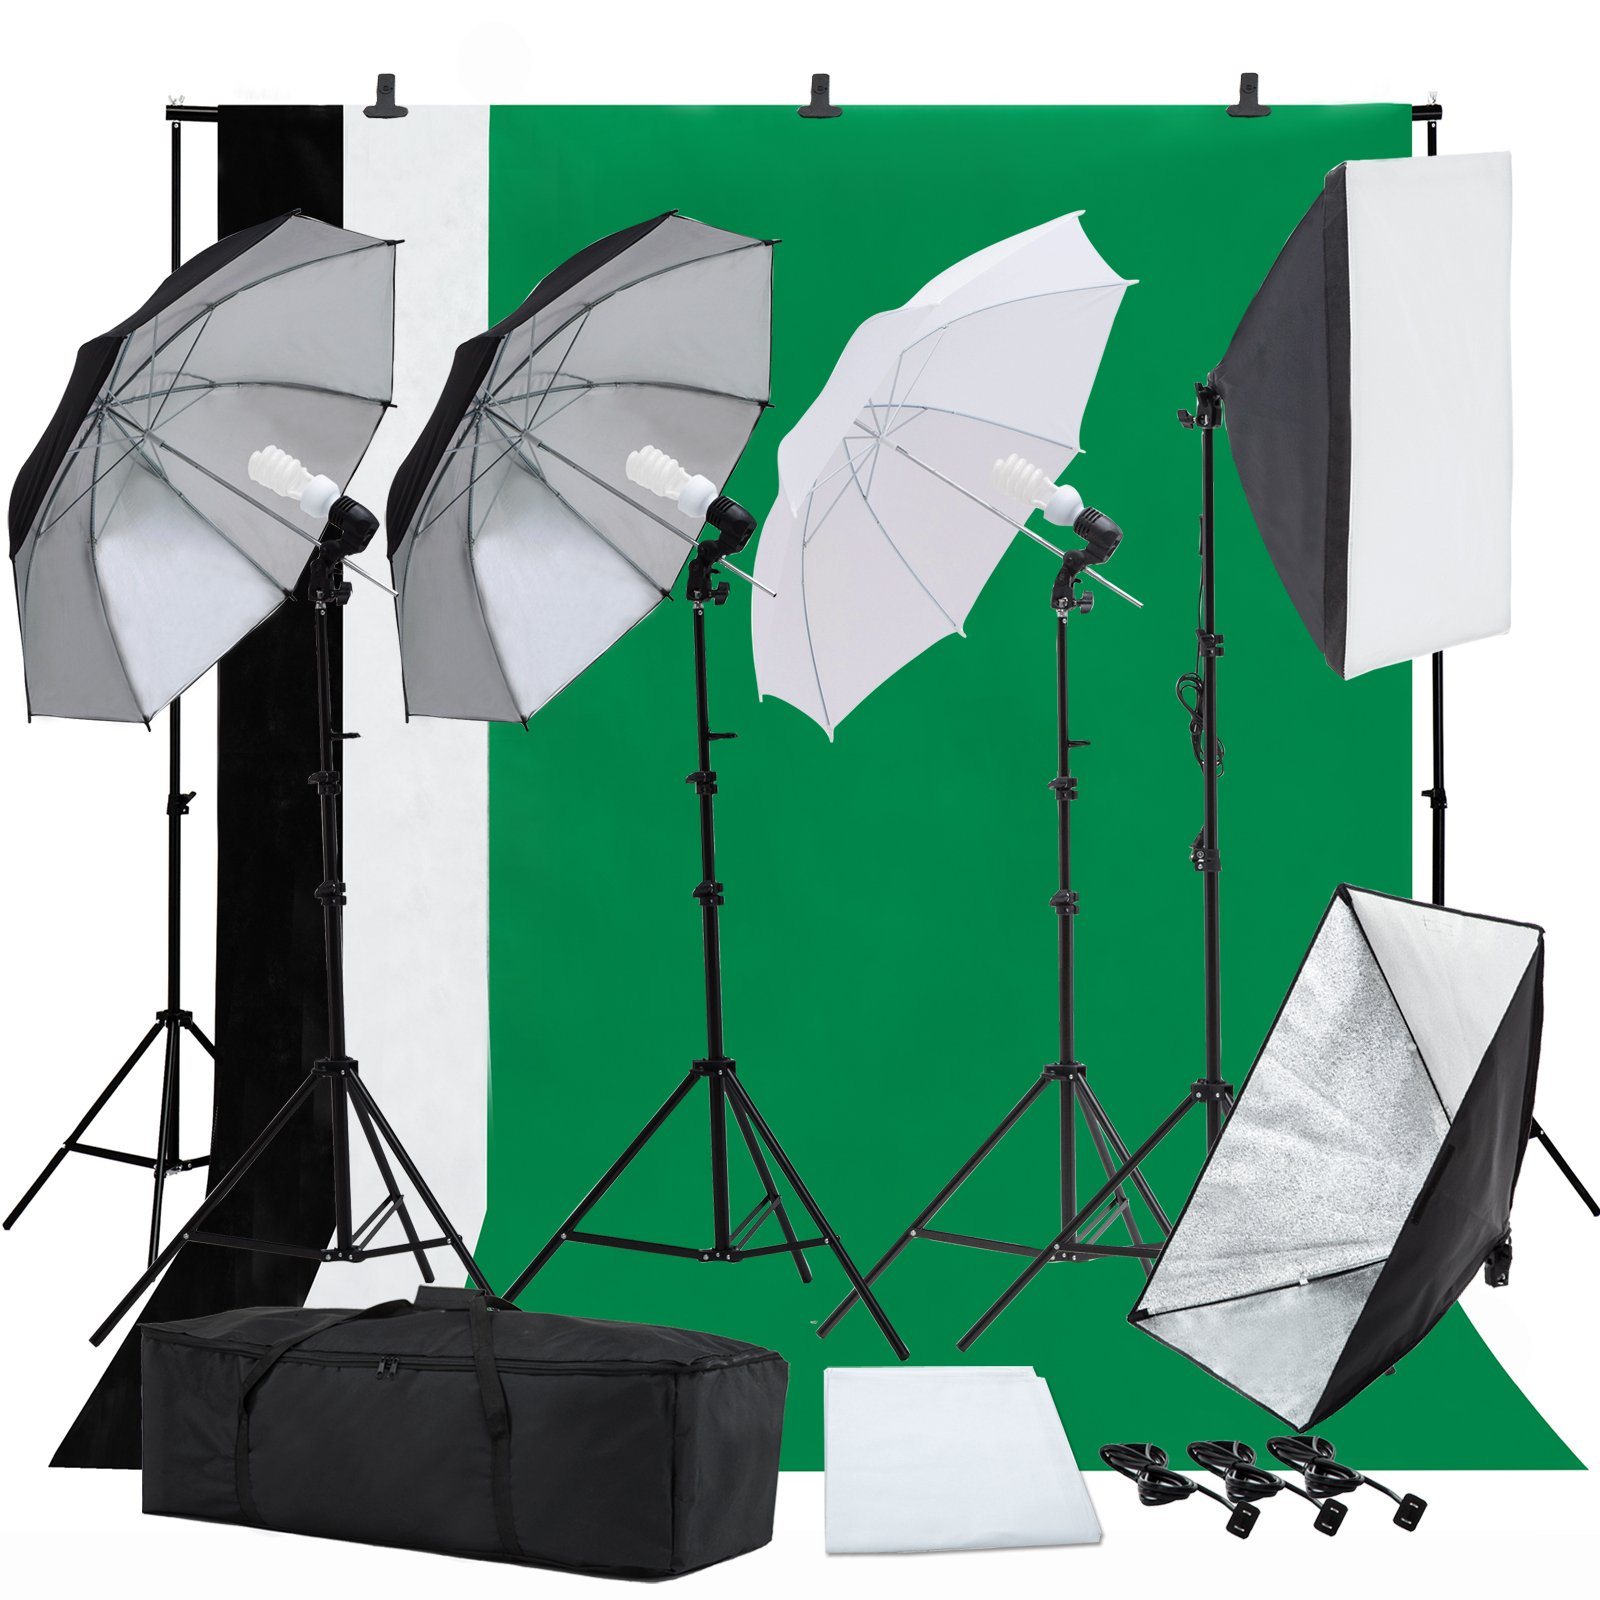 SUNCOO Photo Studio Photography Lighting Kit, Background Support Stand Kit 6.6ft x 10ft, Umbrellas Softbox Muslin Continuous Lighting Kit Case Portfolio Video Shooting, 4 Bulbs by SUNCOO